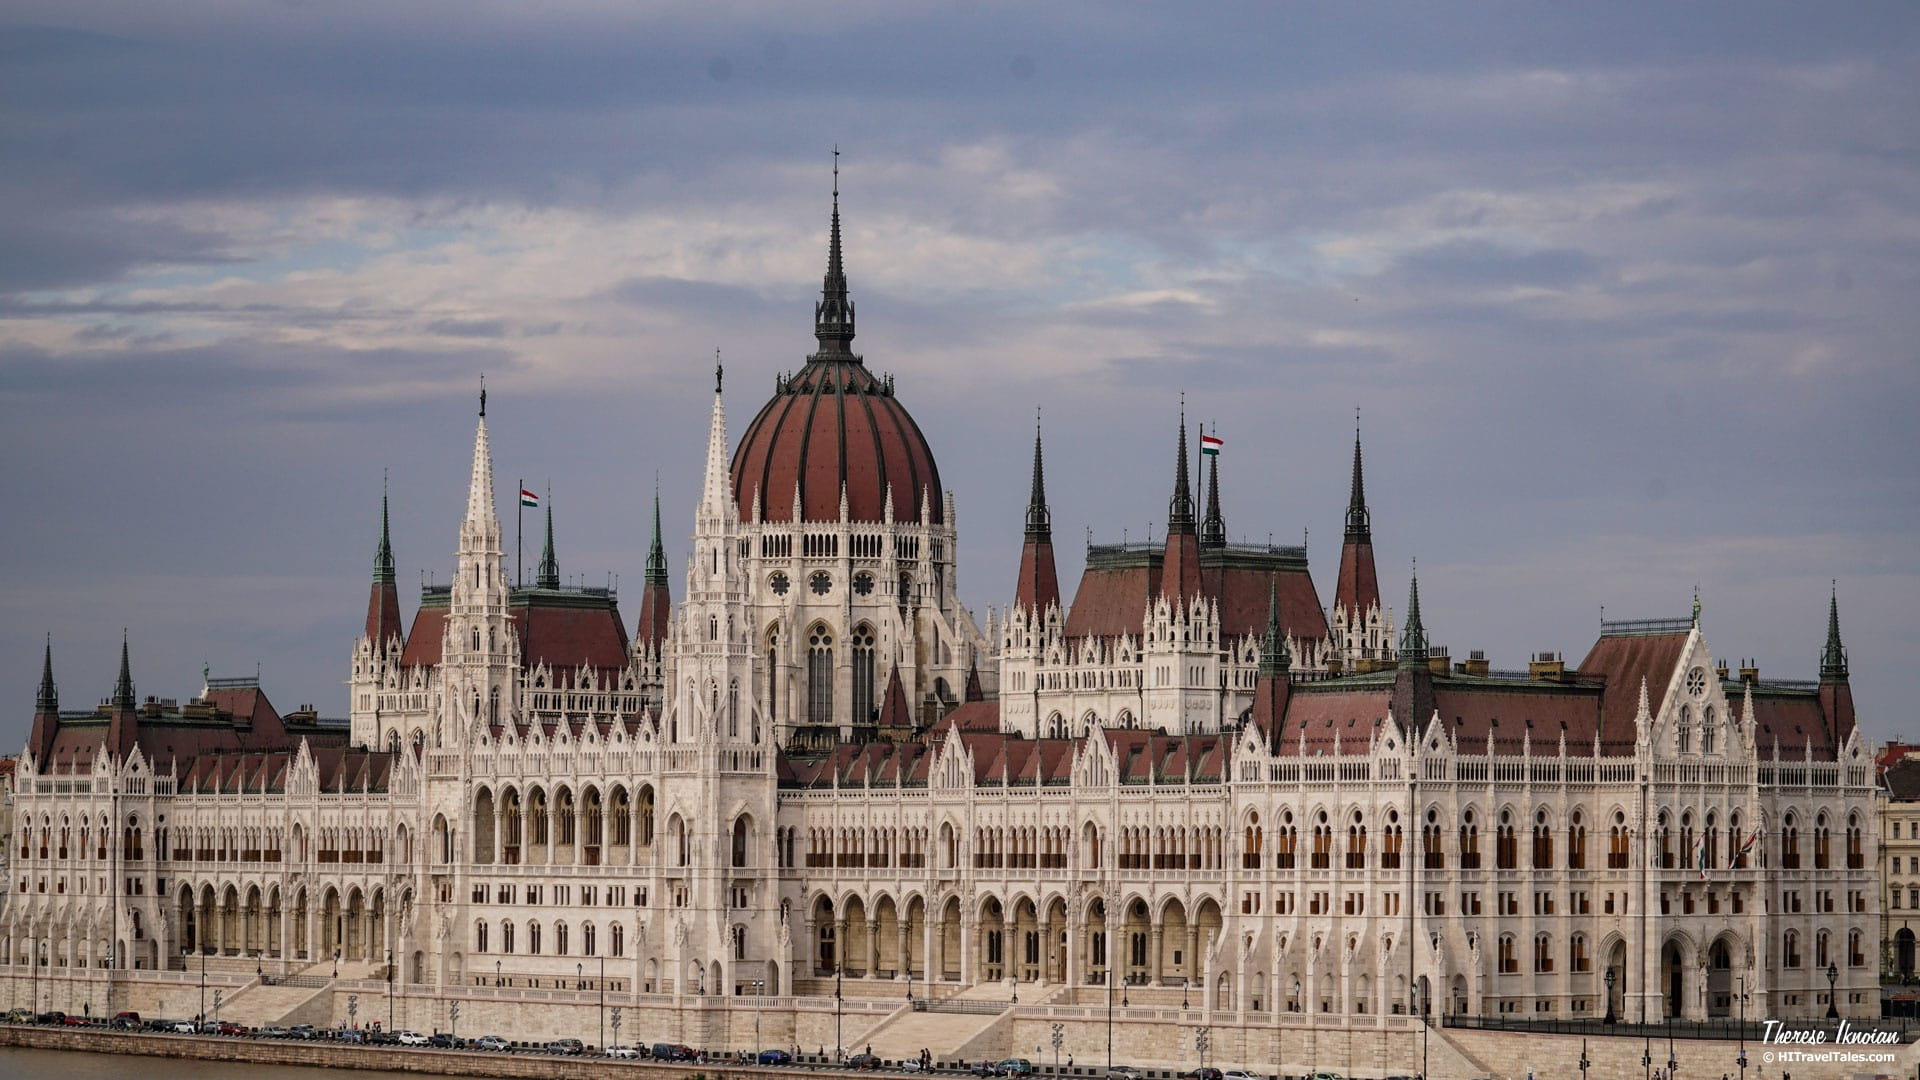 Wondering what to do in Budapest? Our Budapest City Guide will help you visit the Jewish Quarter, City Park